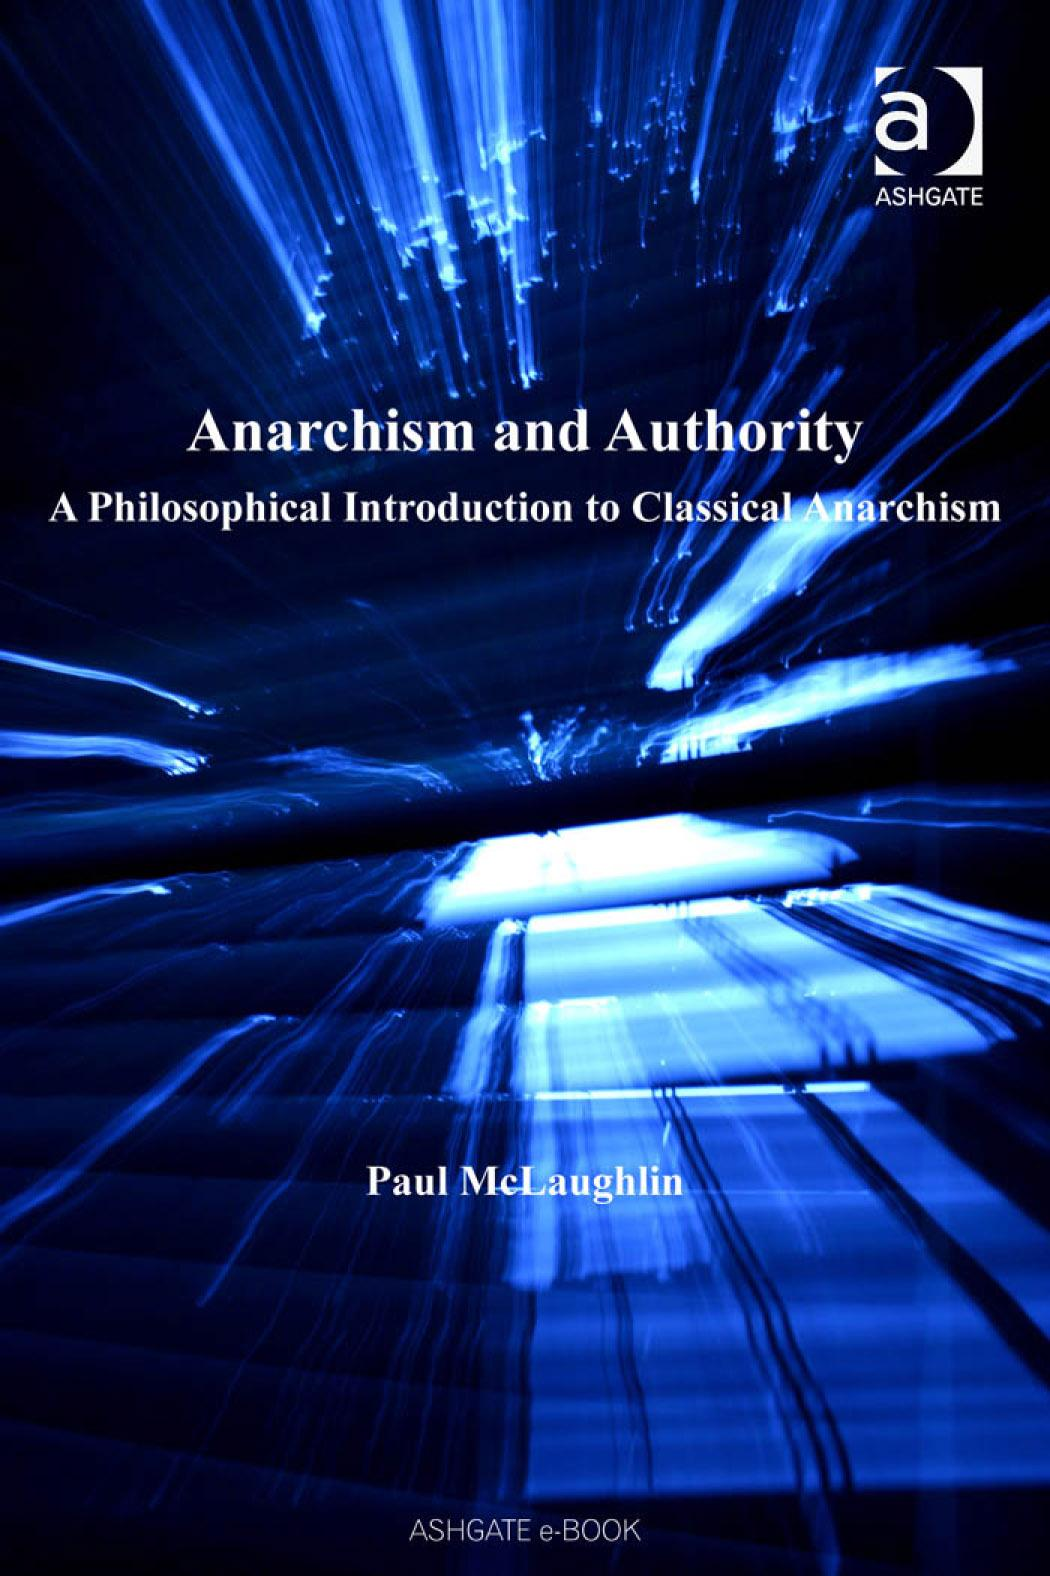 Archism and Authority: A Philosophical Introduction to Classical Anarchism